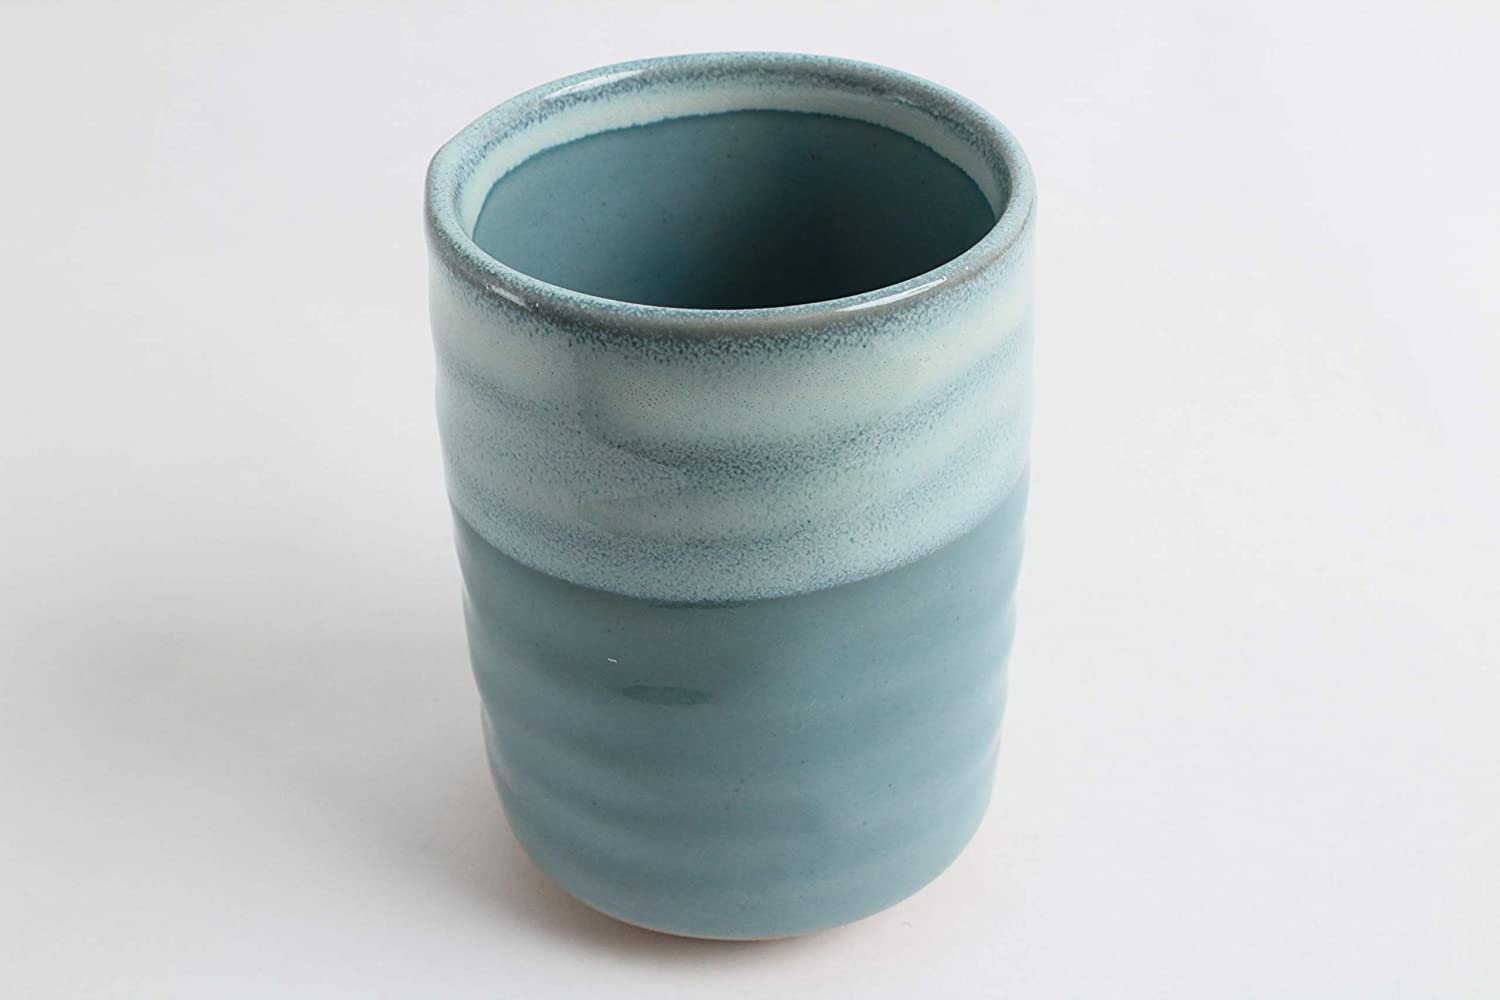 YAY047 Japan Import Mino ware Japanese Ceramics Sushi Yunomi Chawan Tea Cup Large Sky Blue /& Sapphire Blue Made in Japan